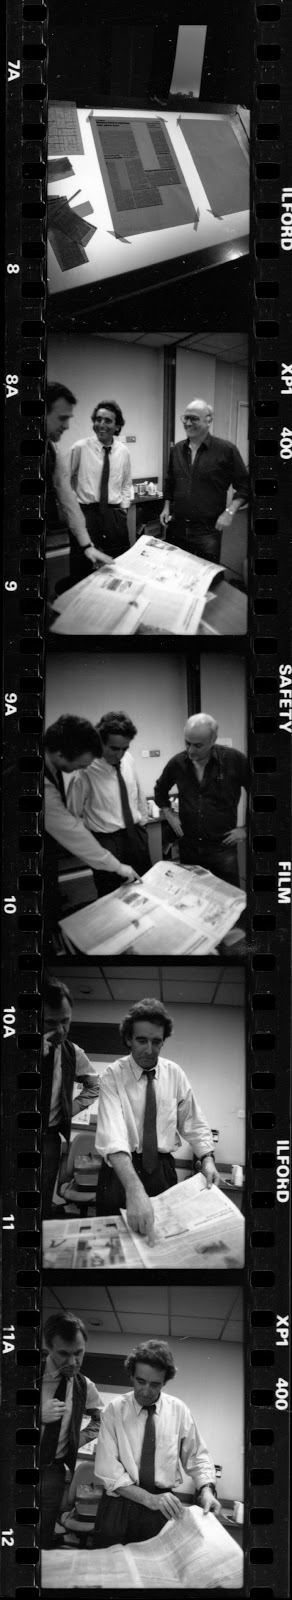 Lunas caf 1988 david hillman redesigns the guardian paul luna a newspaper for the nineties blueprint 46 april 1988 5456 malvernweather Images